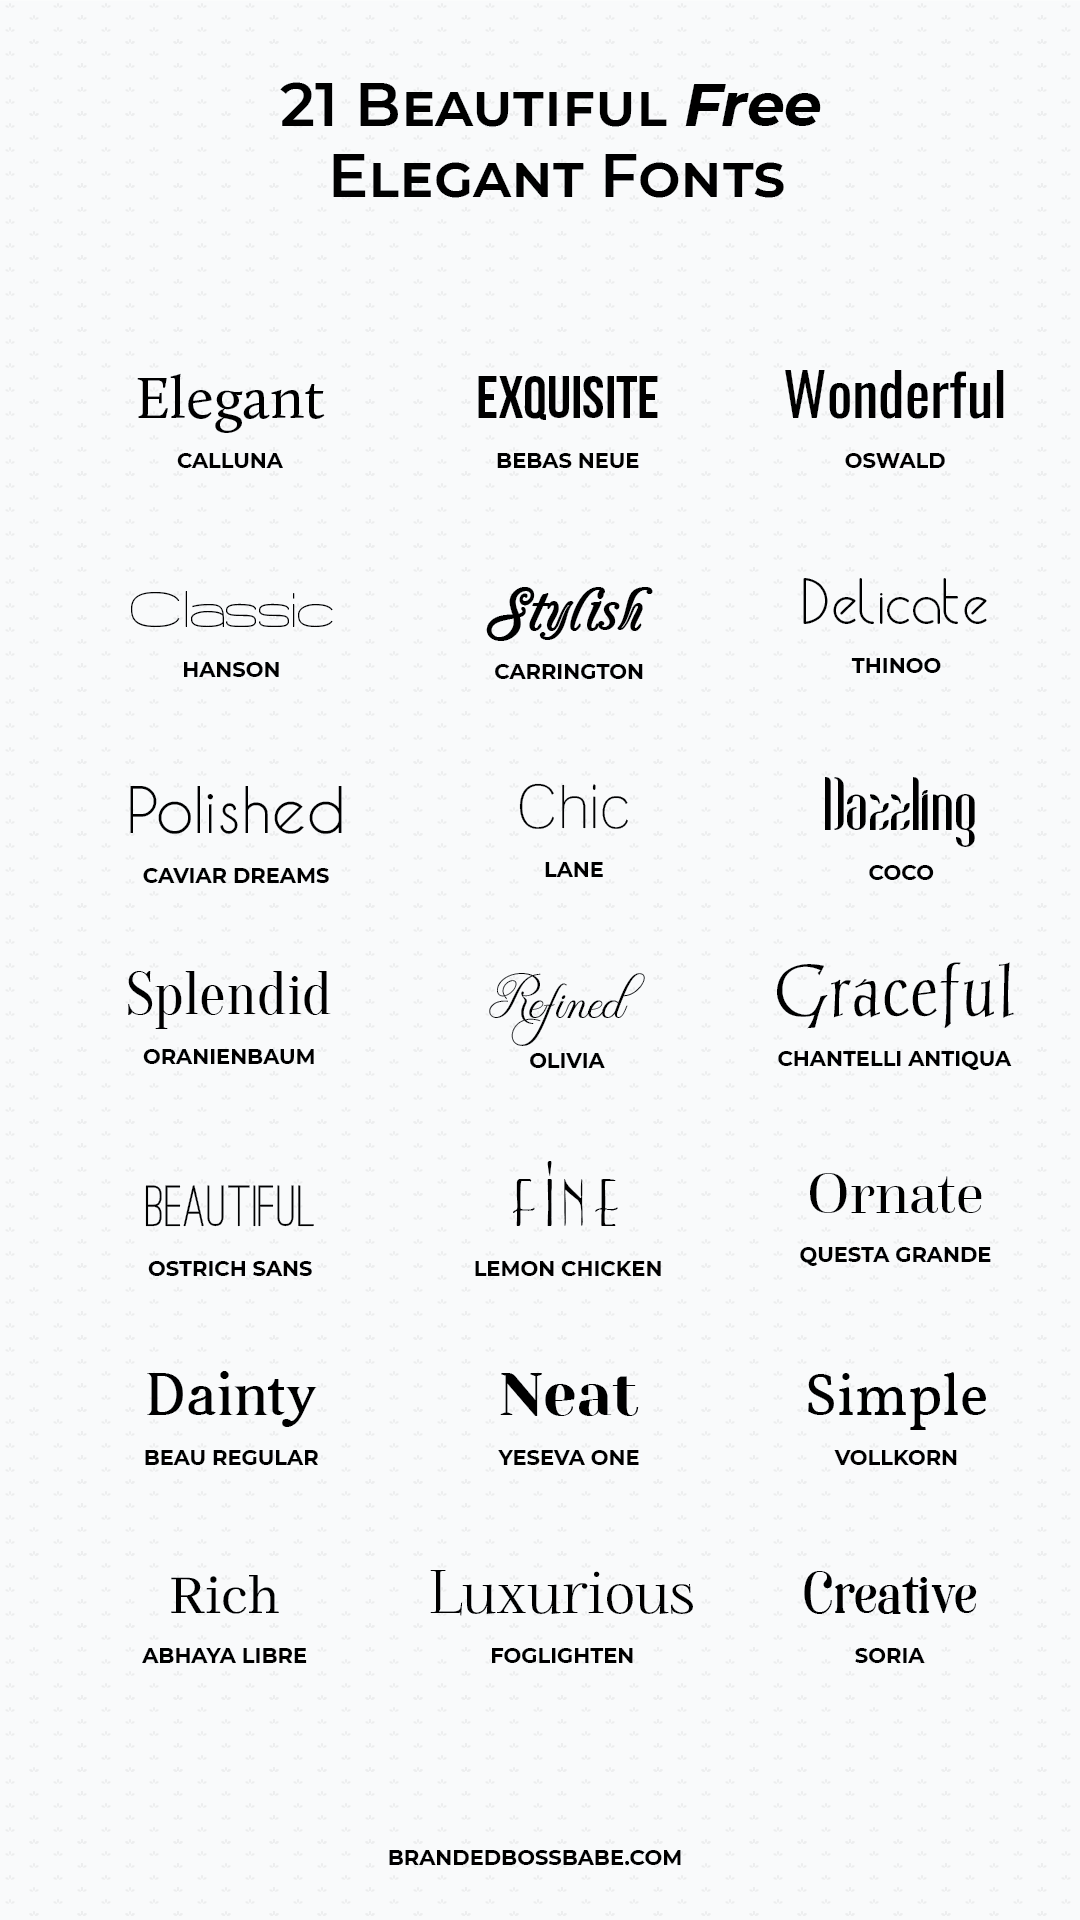 Download free and beautiful elegant fonts for your brand. #freefonts #logodesign #brandedbossbabe #graphicdesign #typography